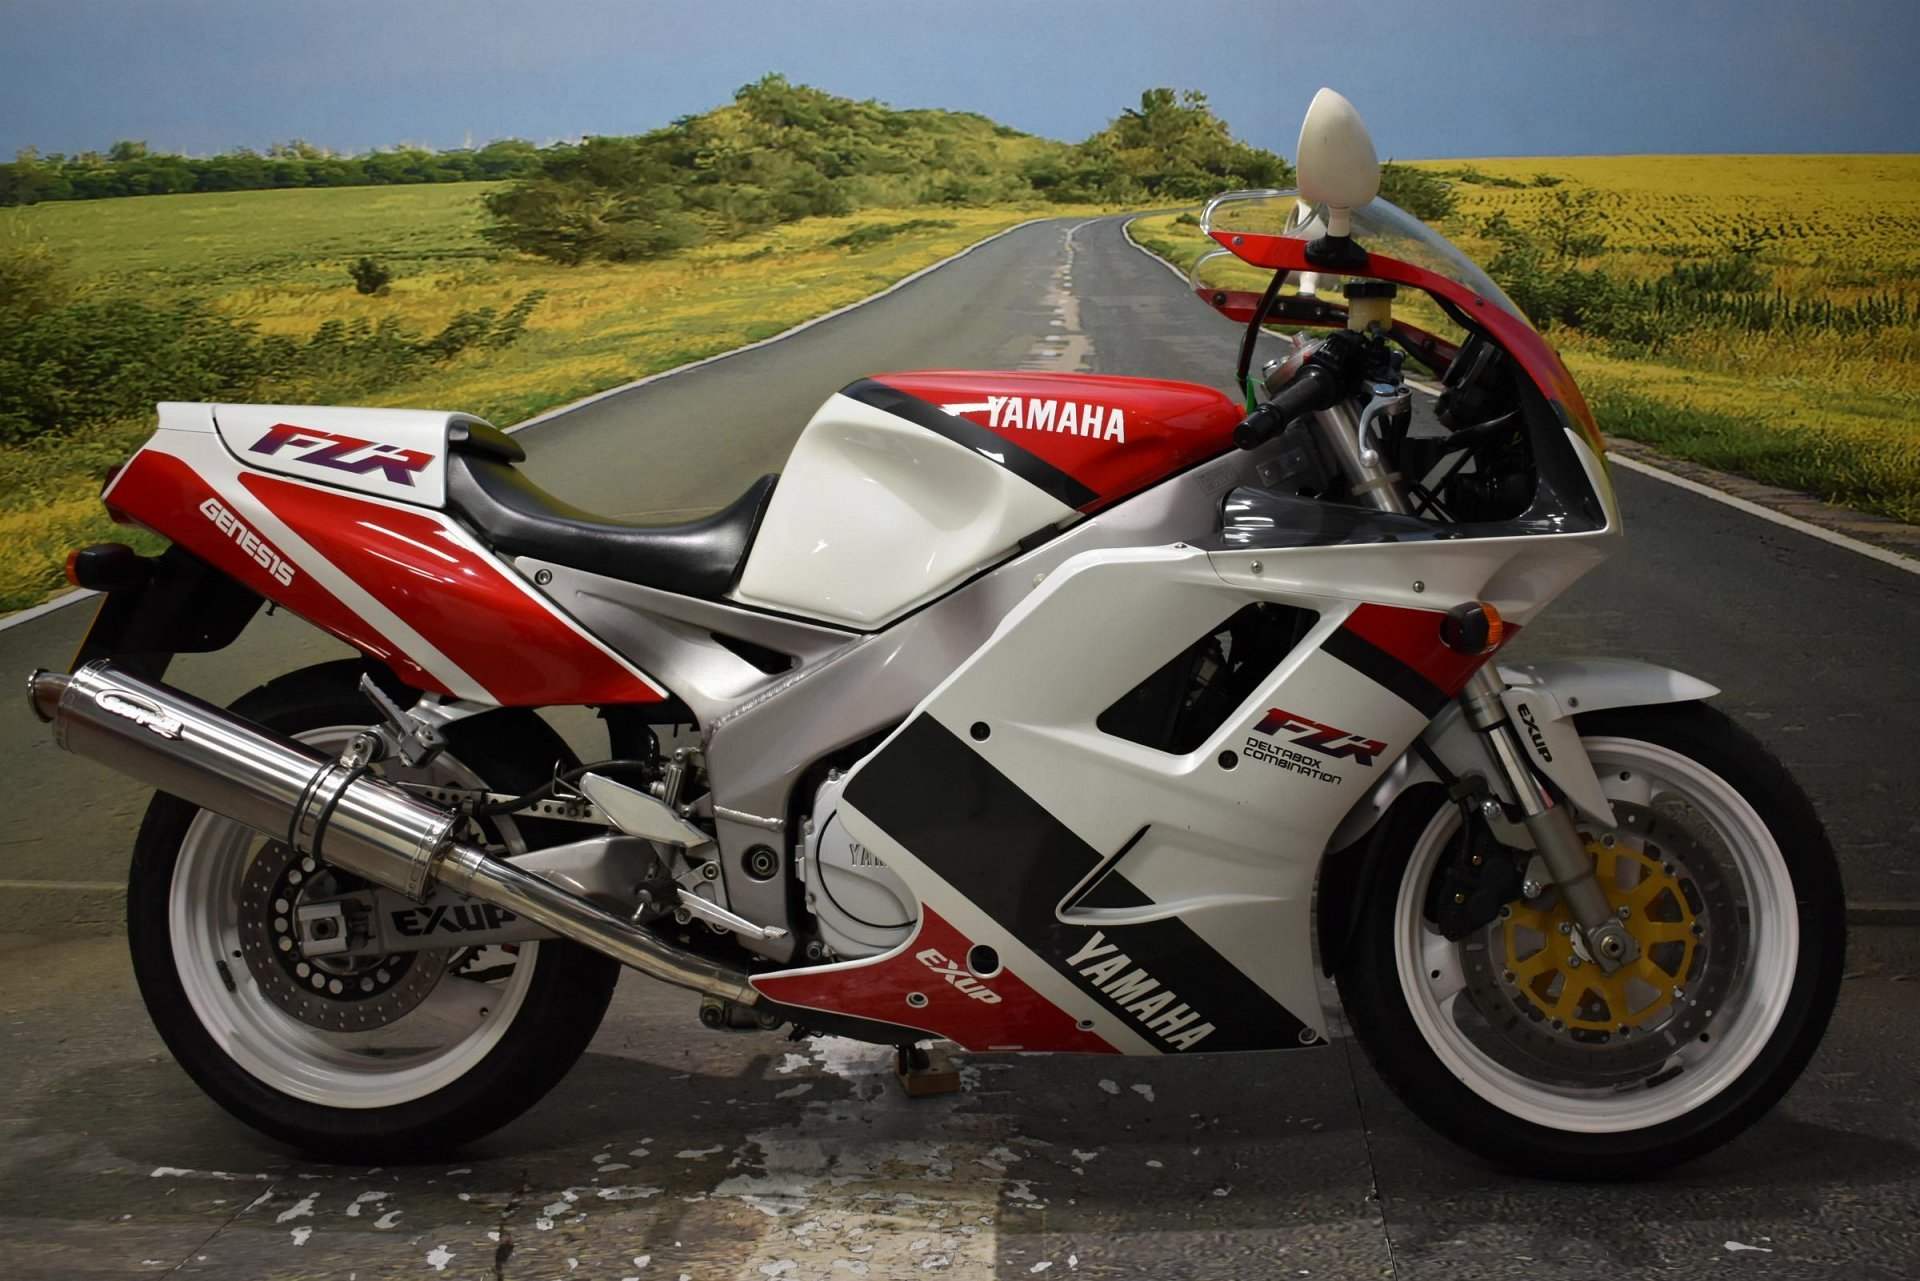 1992 Yamaha FZR 1000R for sale in Derbyshire